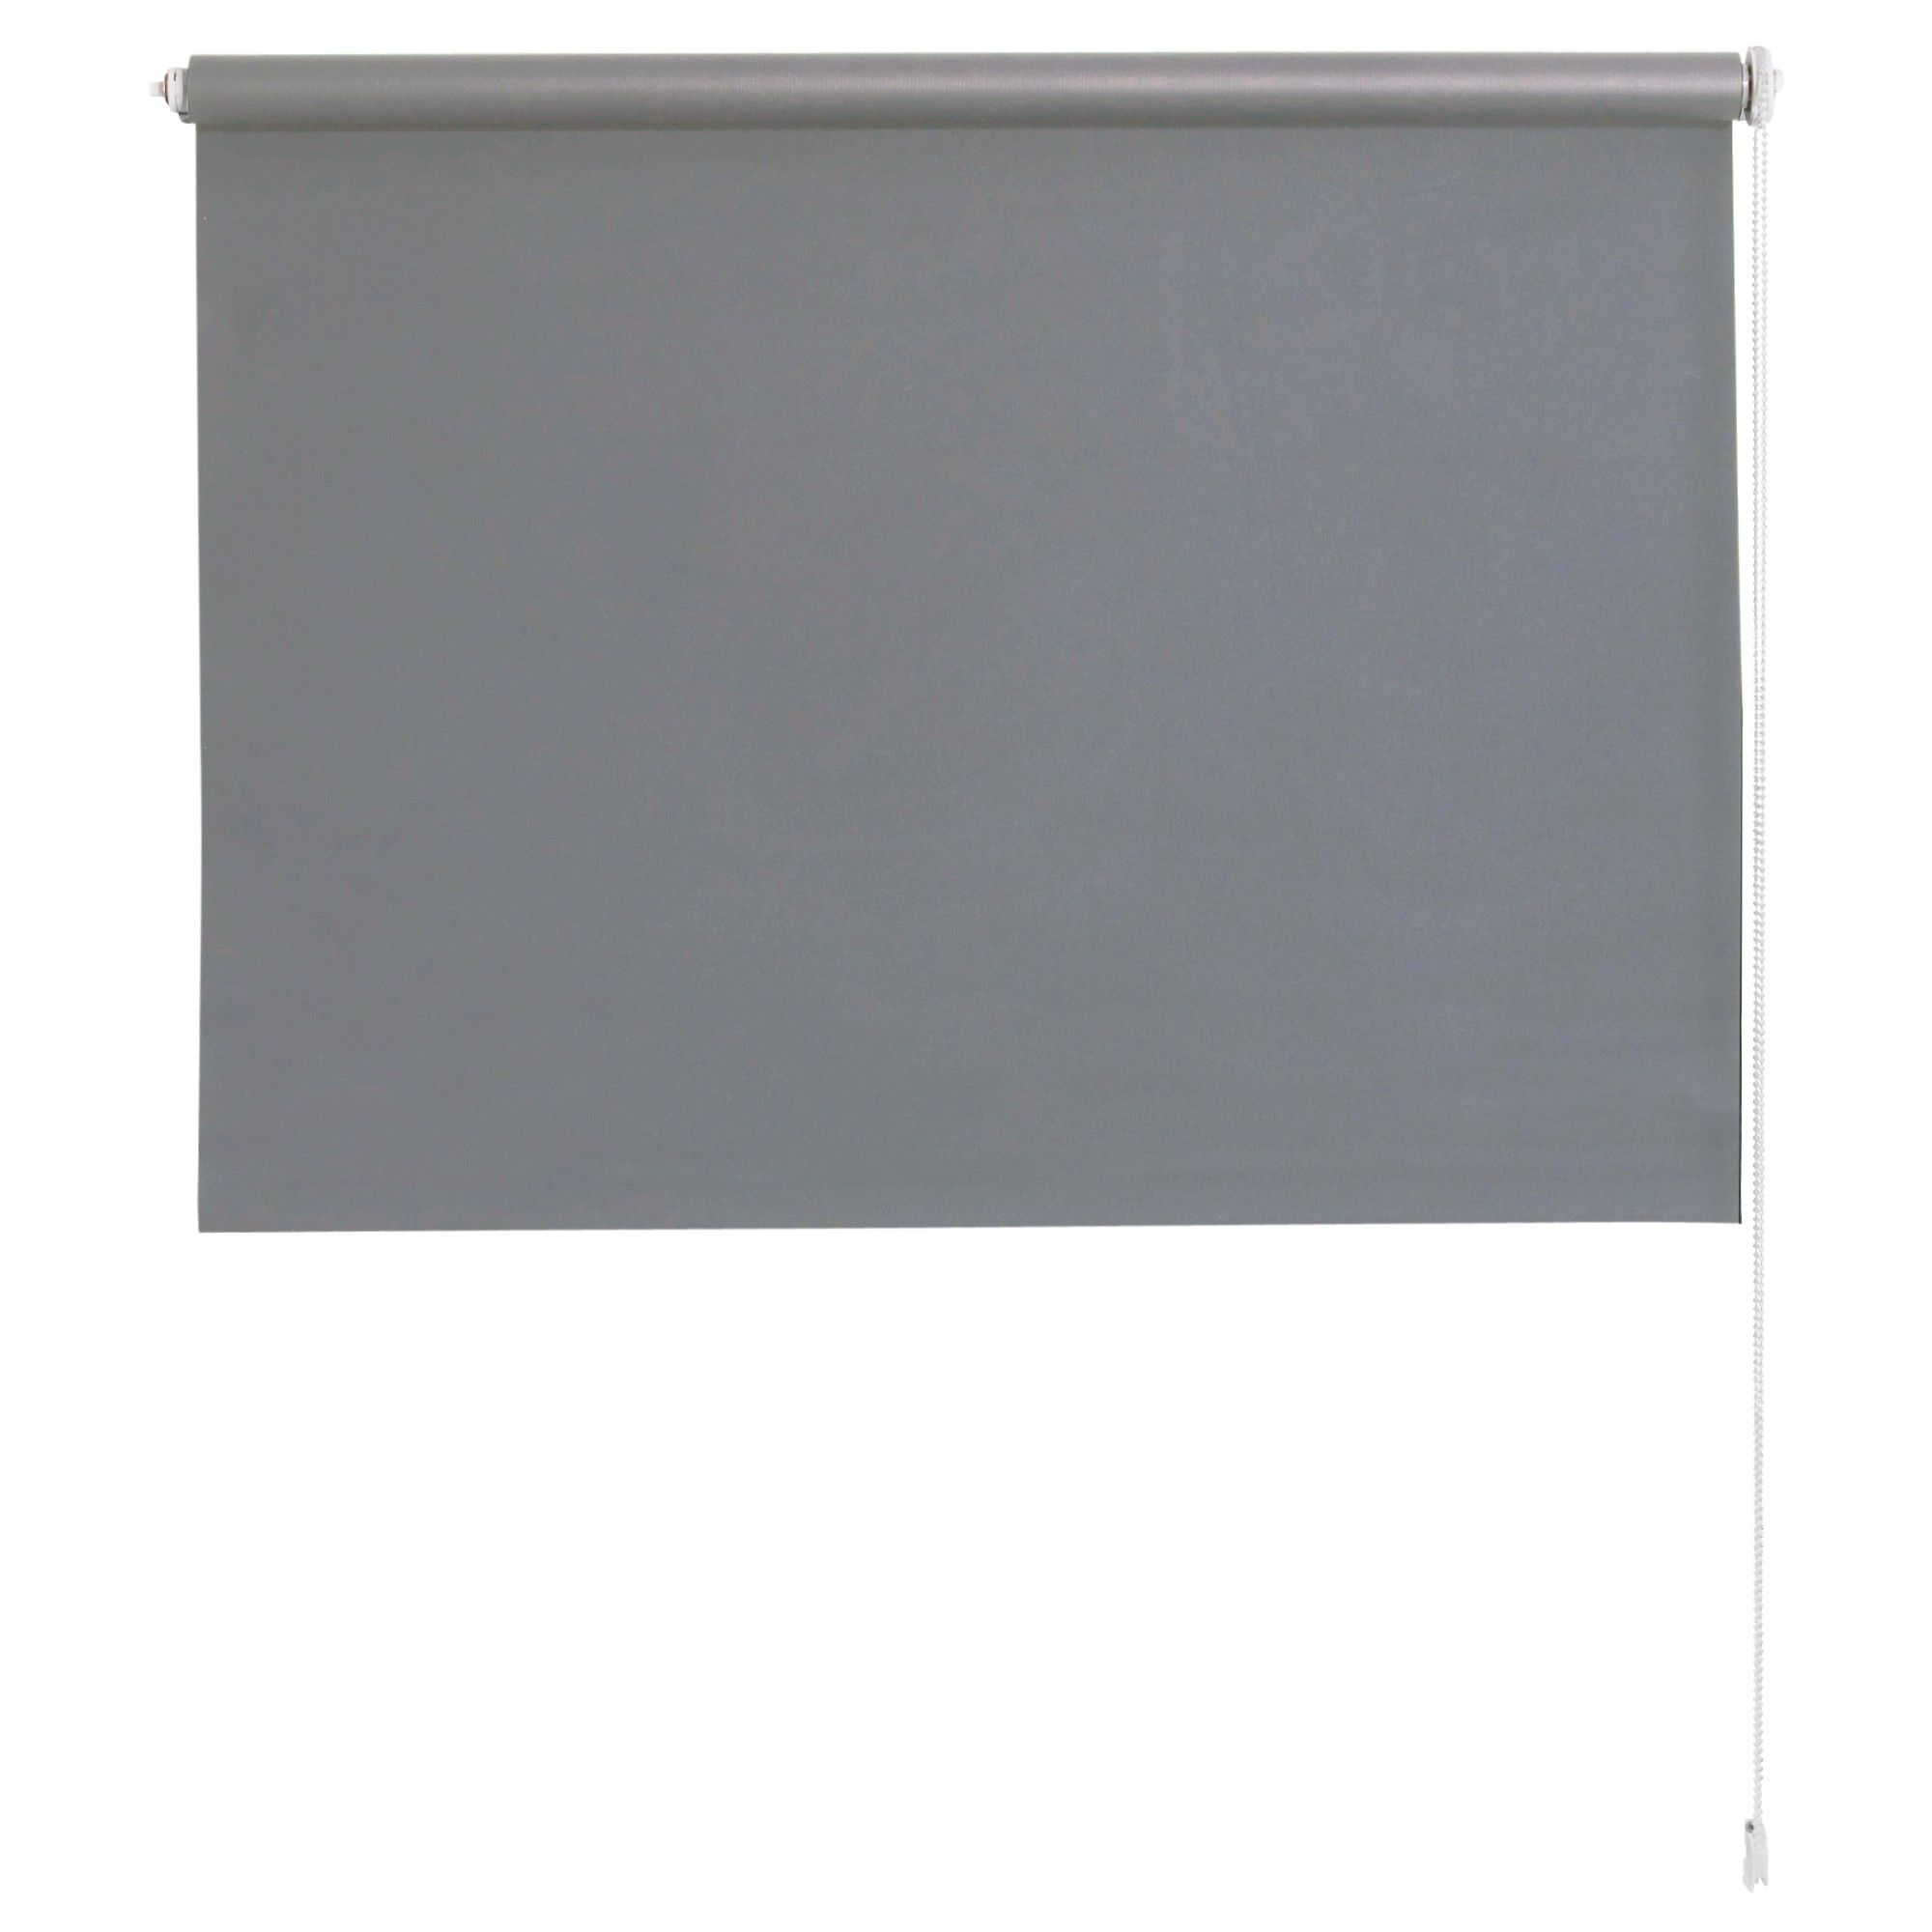 tupplur roller blind 100x195 cm ikea for mbr i 39 d. Black Bedroom Furniture Sets. Home Design Ideas